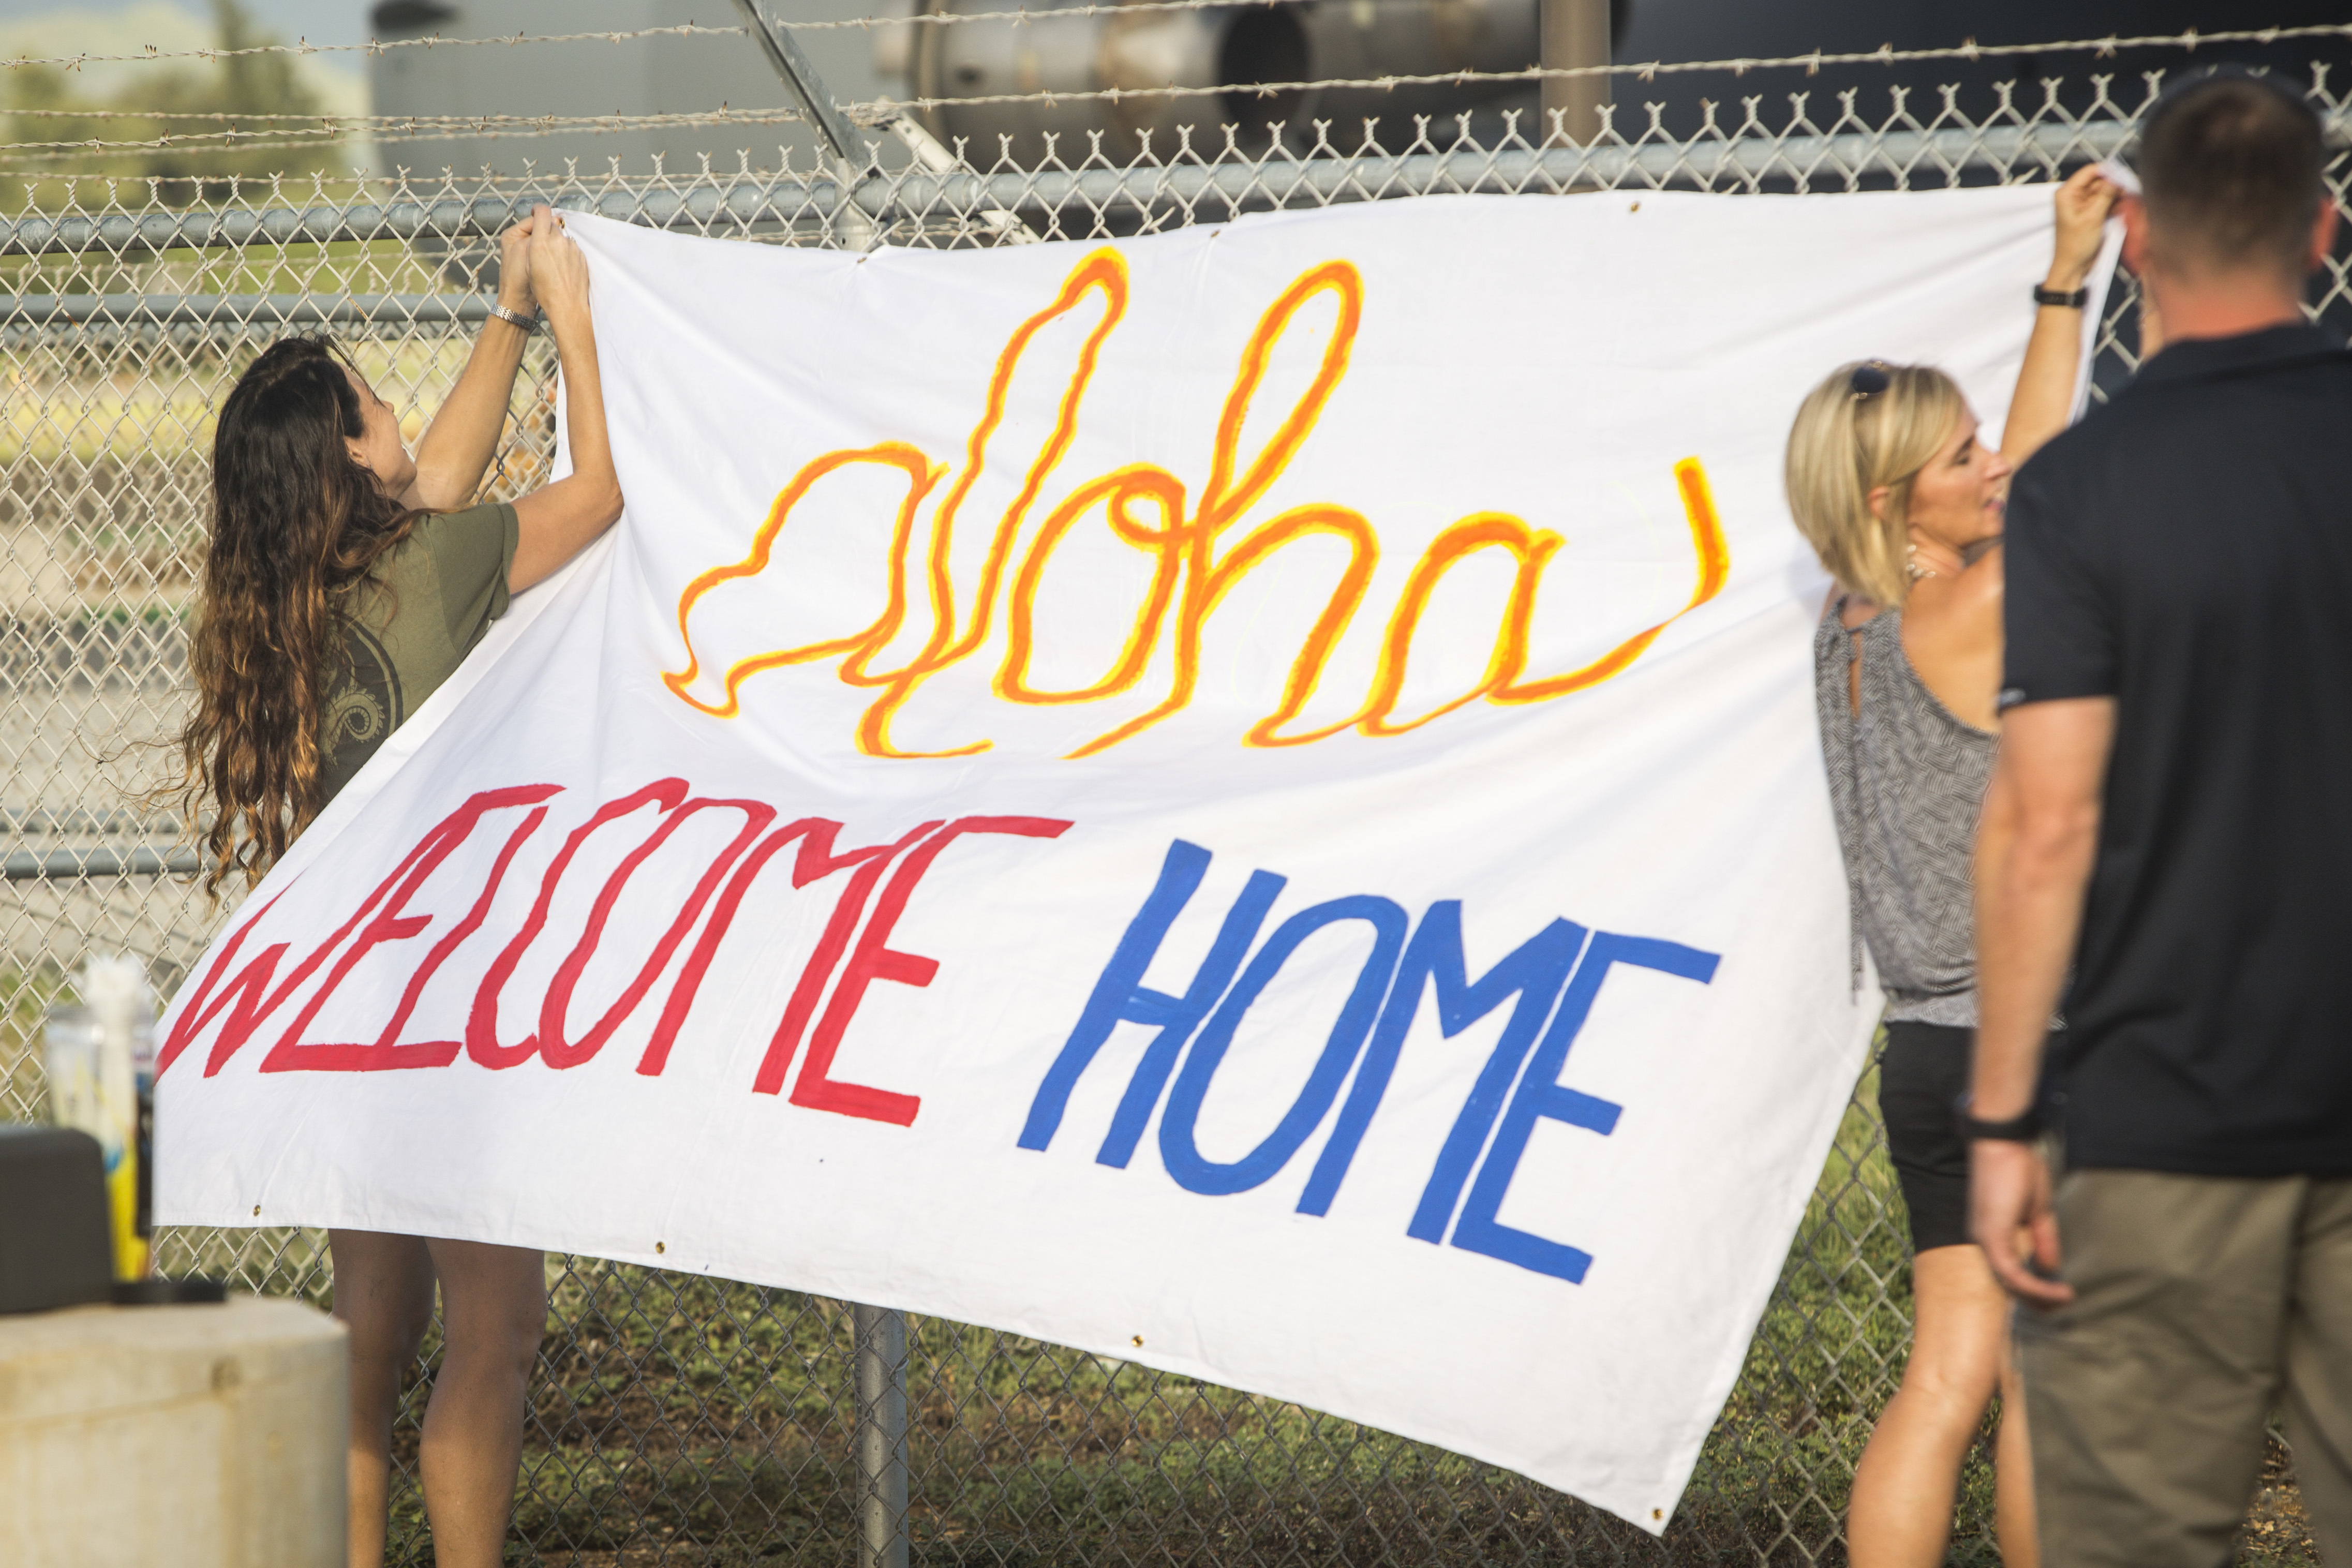 Great, real life ideas for homecoming signs. Keeping for the next deployment. #military #militaryfamily #militaryspouse #milspouse #milso #milspo #inspiration #homecomingsign #crafty #family #deployment #deploymentlife #deploymentsucks